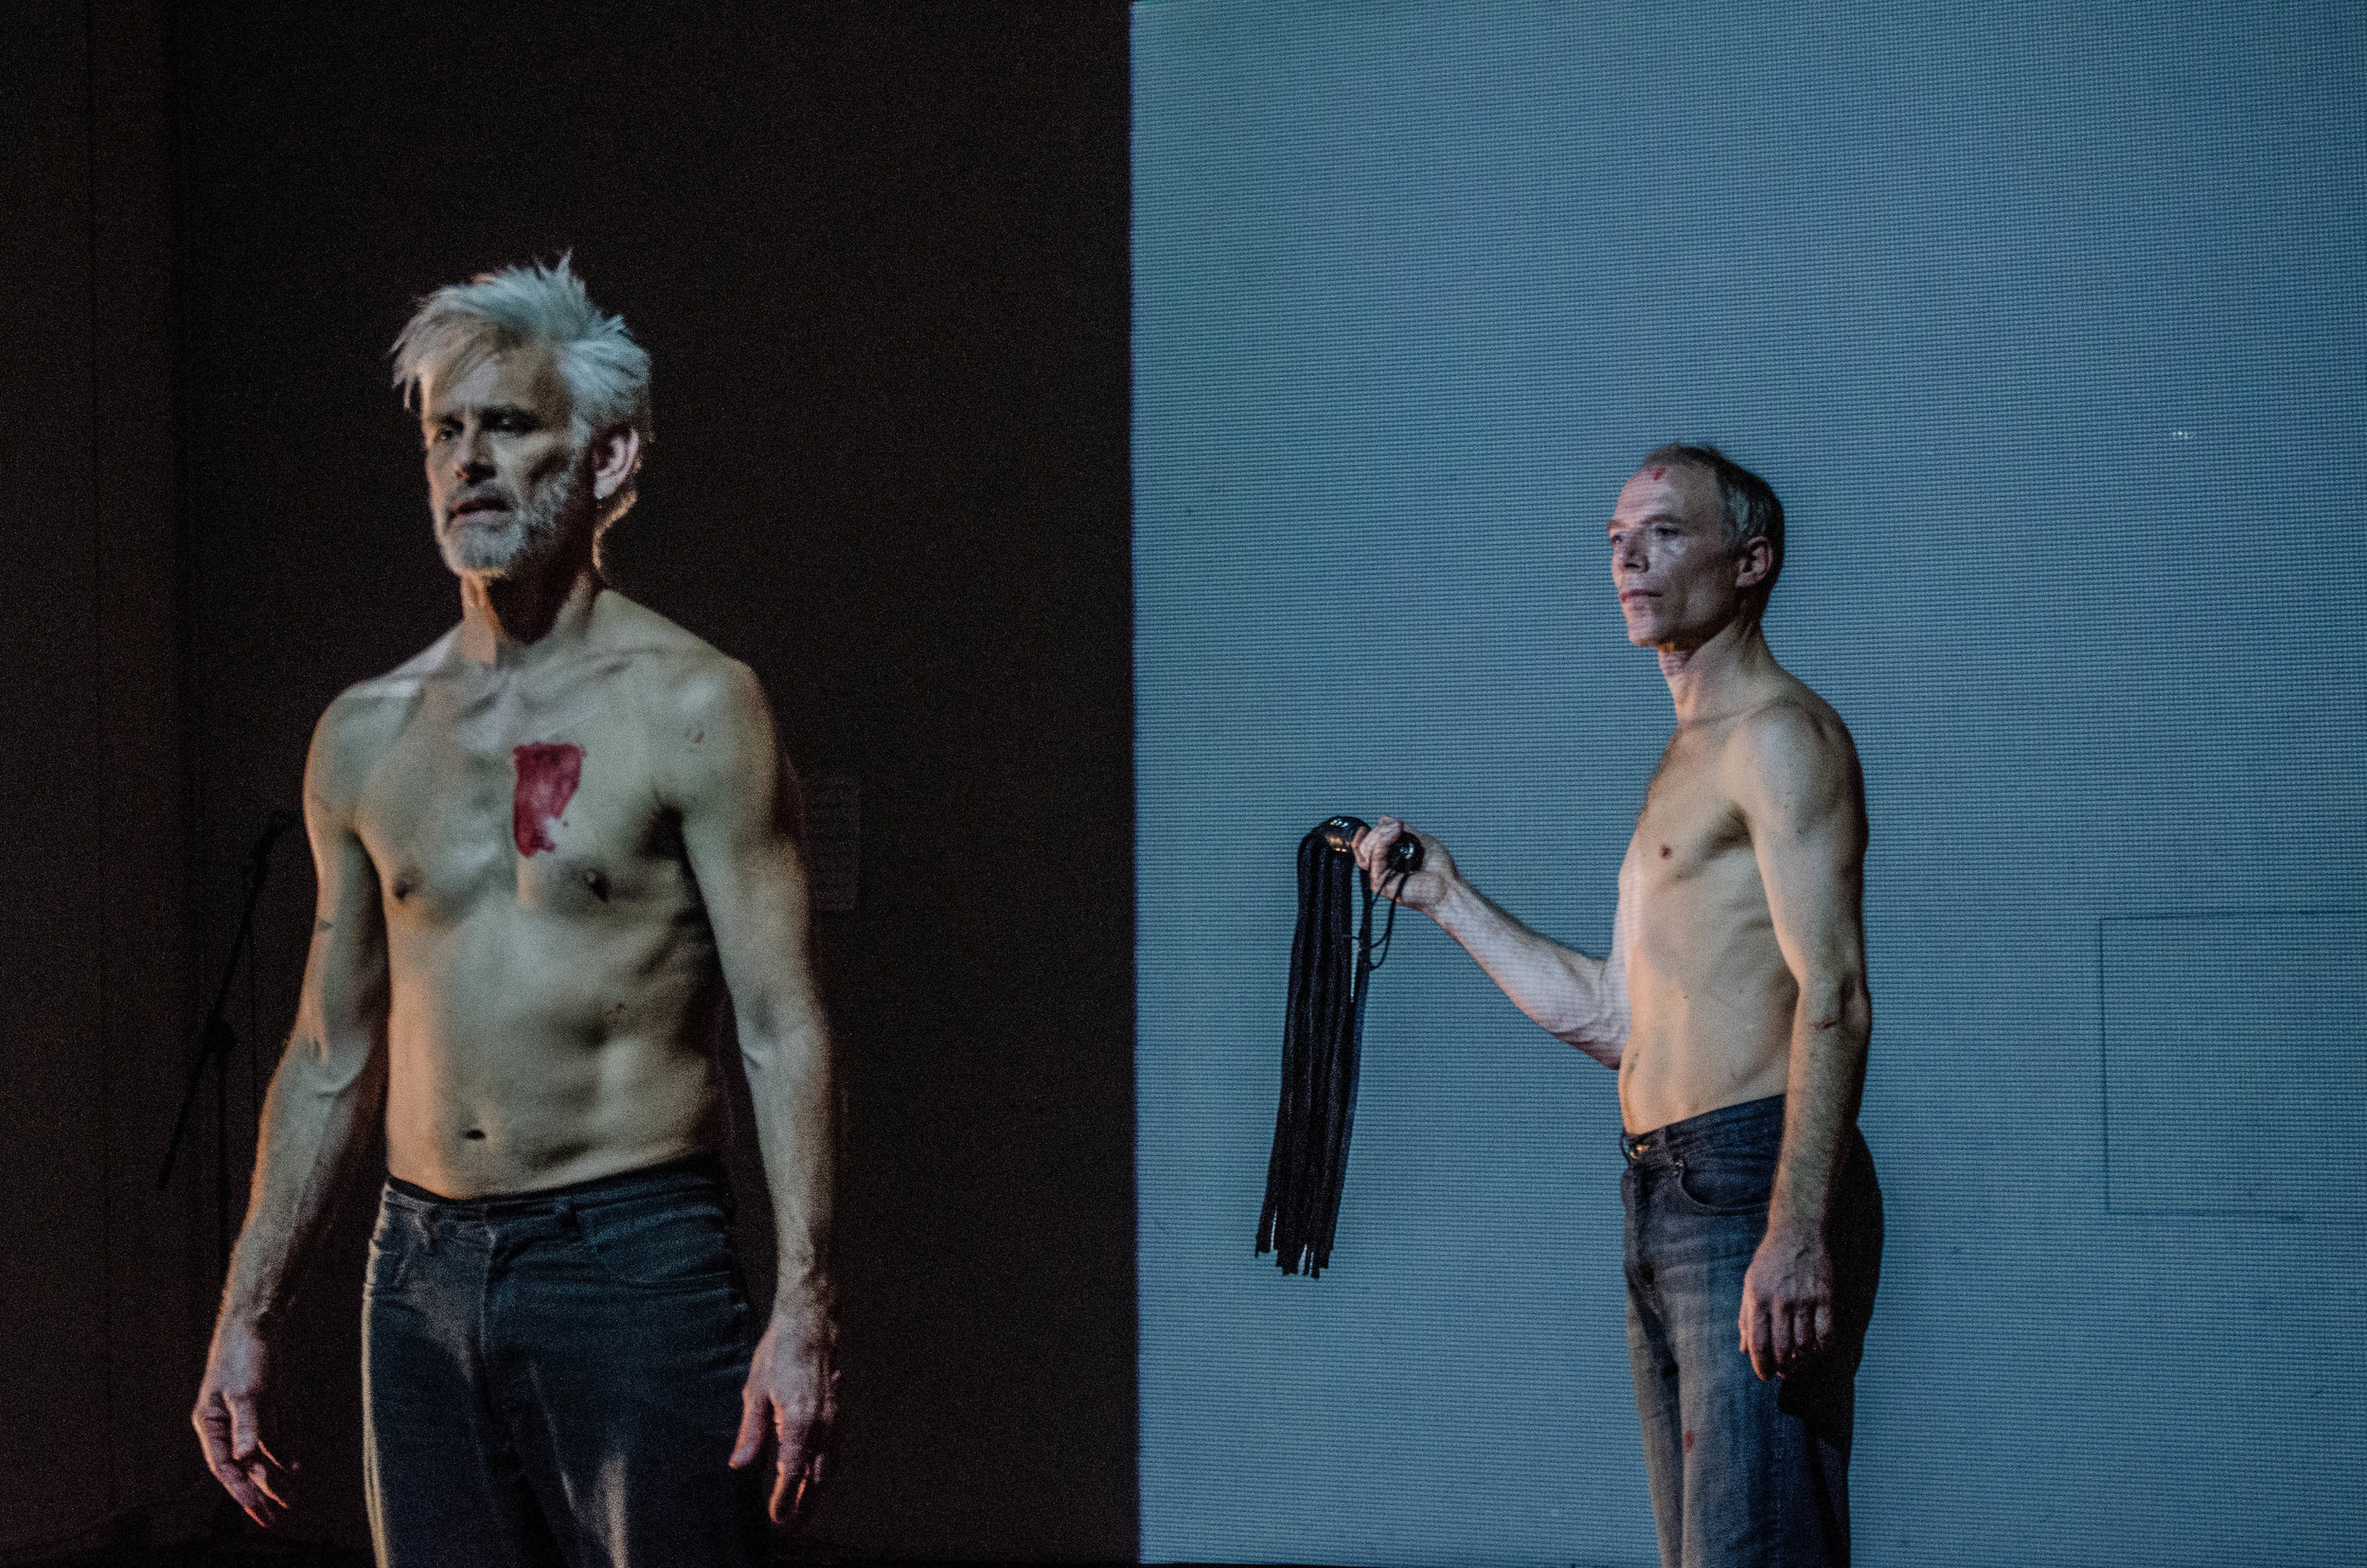 Curtis in foreground, smudge of red over his heart. Müller, behind, holds flogger and looks at Curtis. Both are shirtless. (photo: Robbie Sweeny)